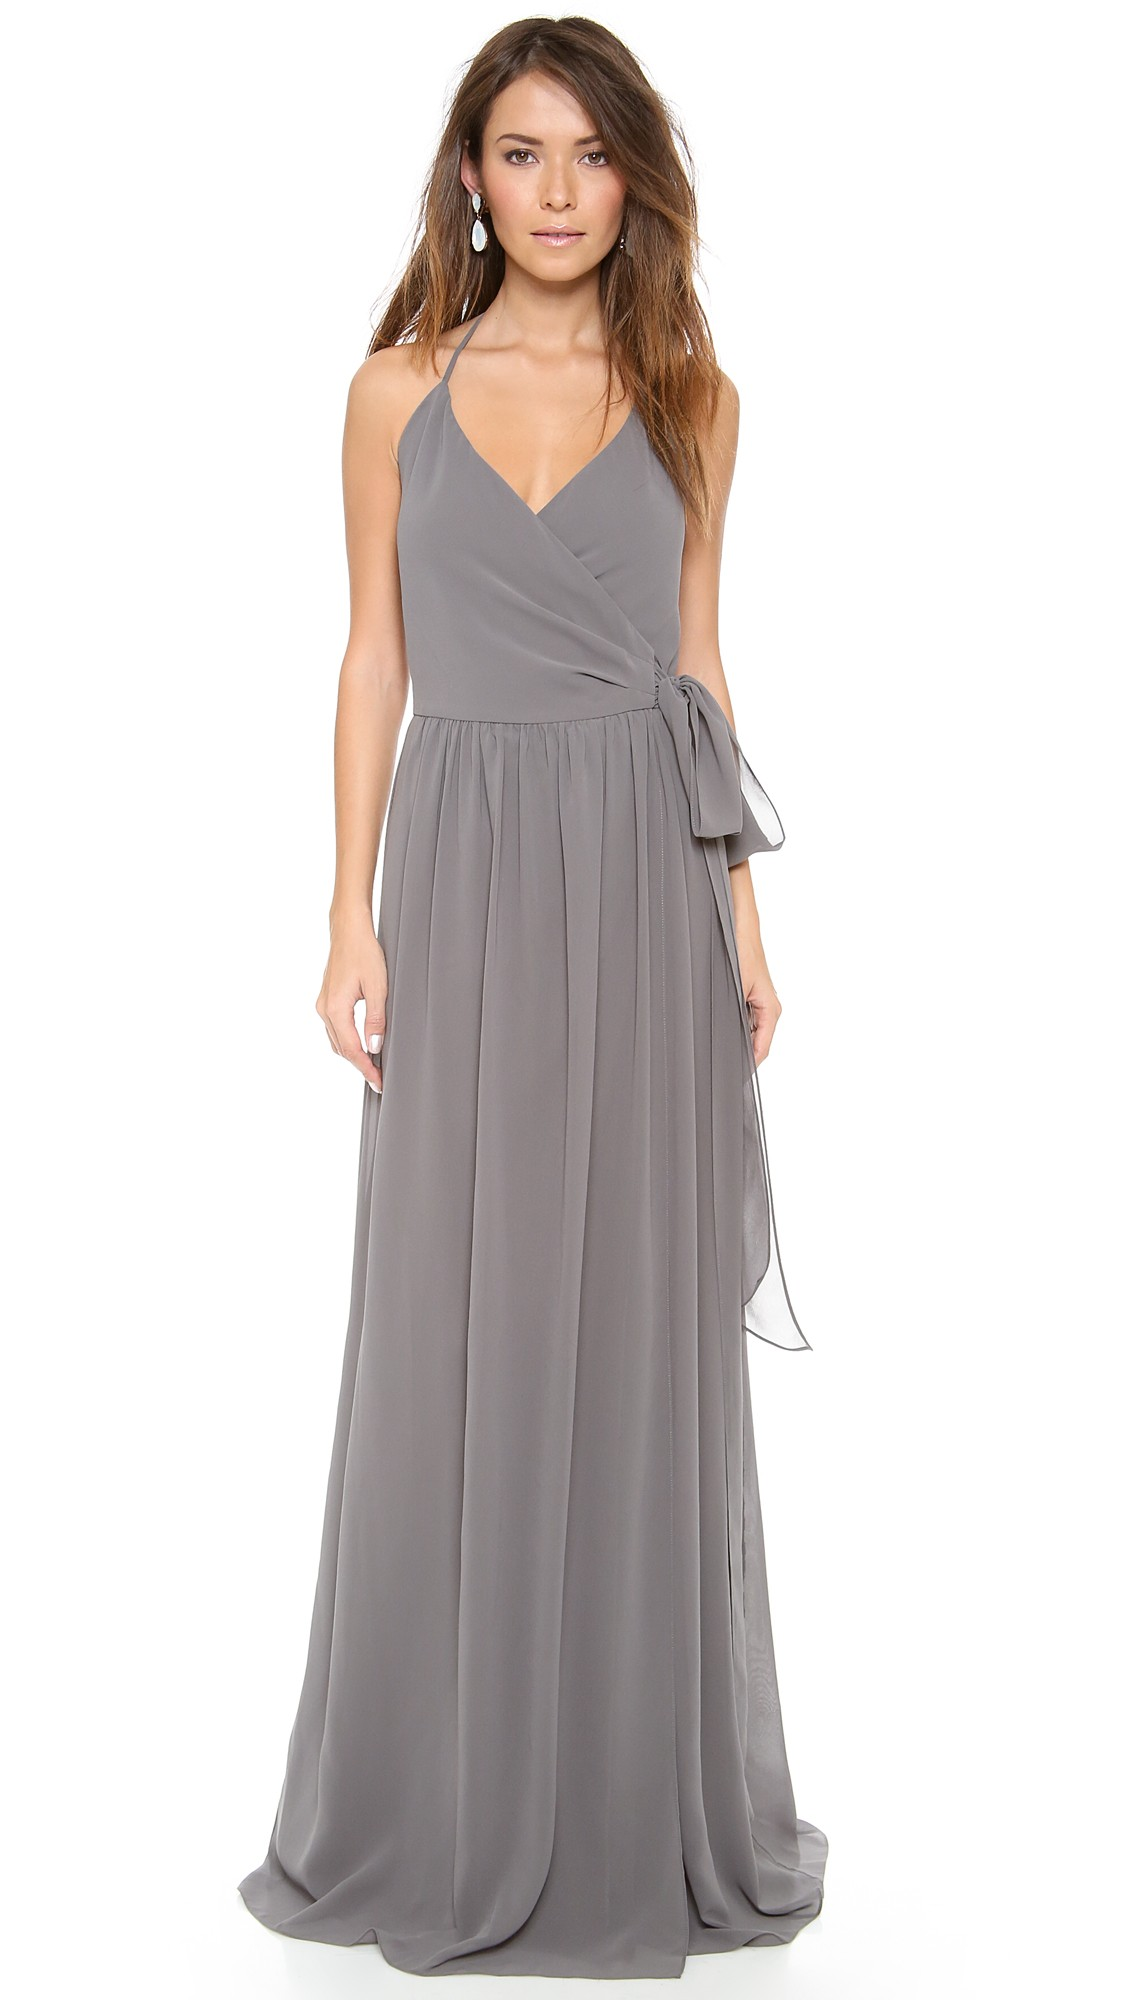 Silver or gray bridesmaid dresses shopbop ombrellifo Choice Image